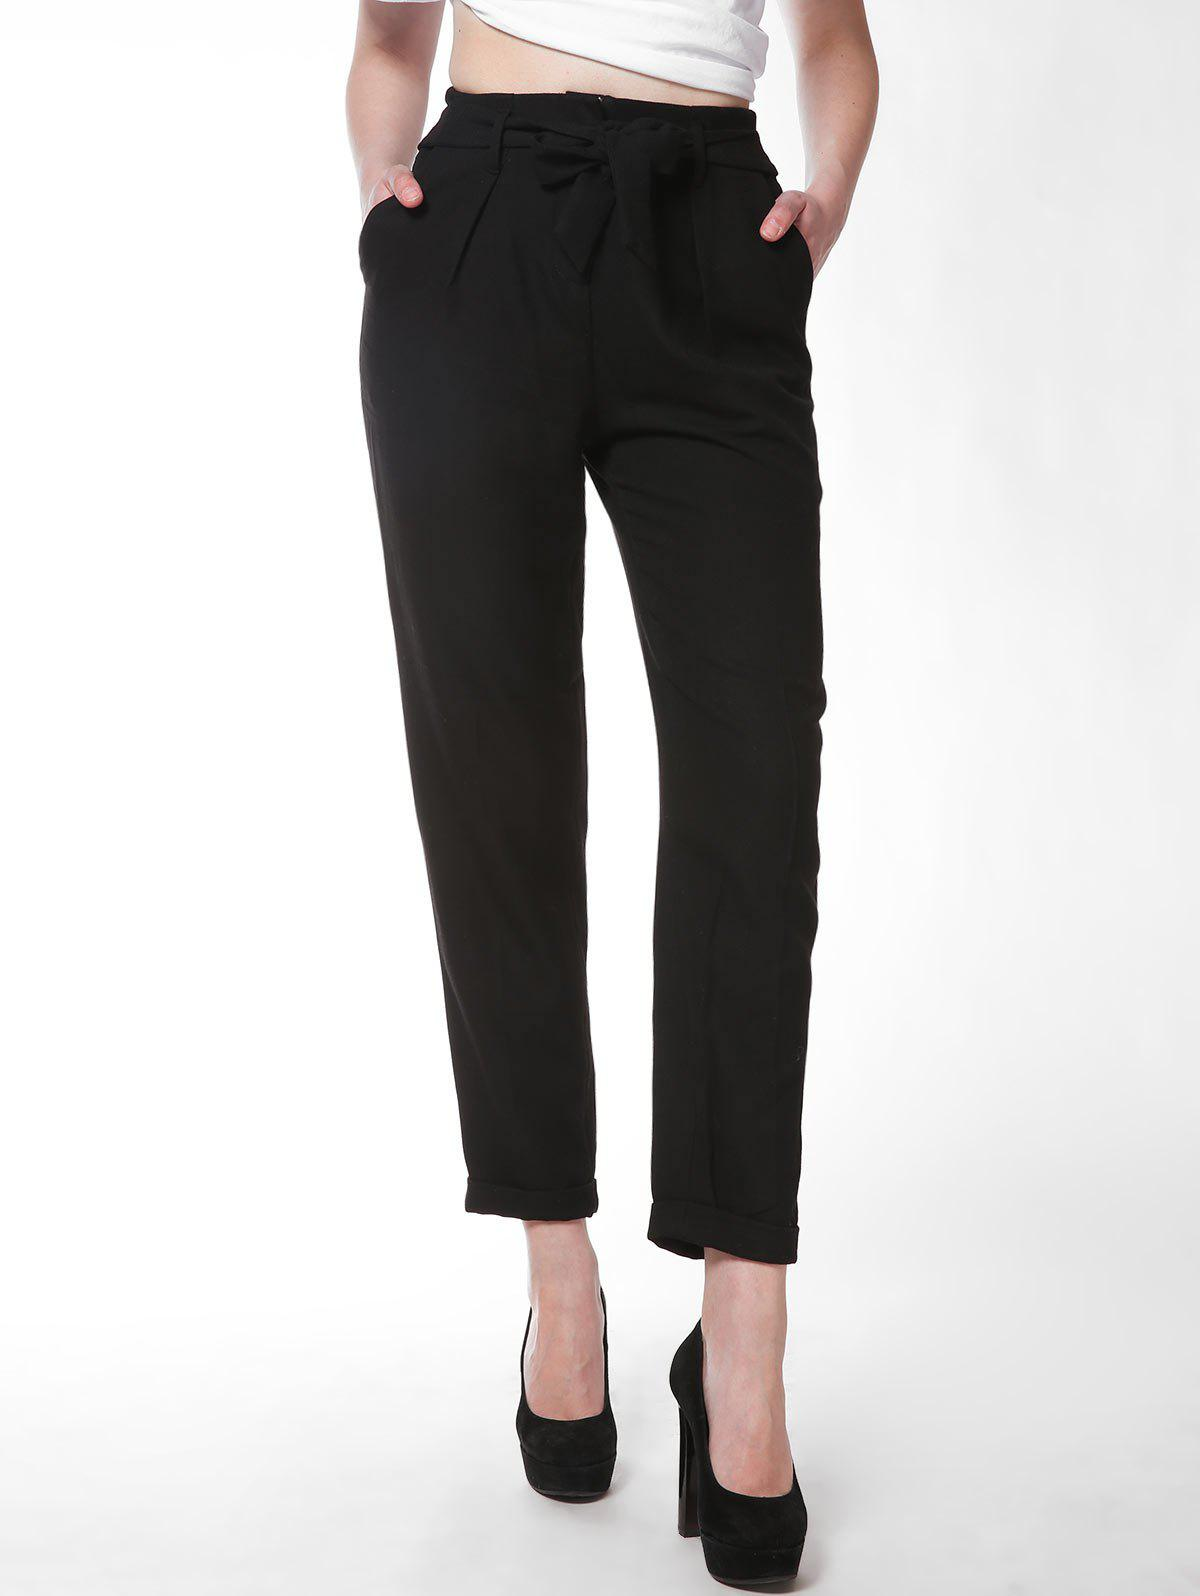 FRENCH BAZAAR Full Length Slim Fit Business Suit Pants - BLACK M